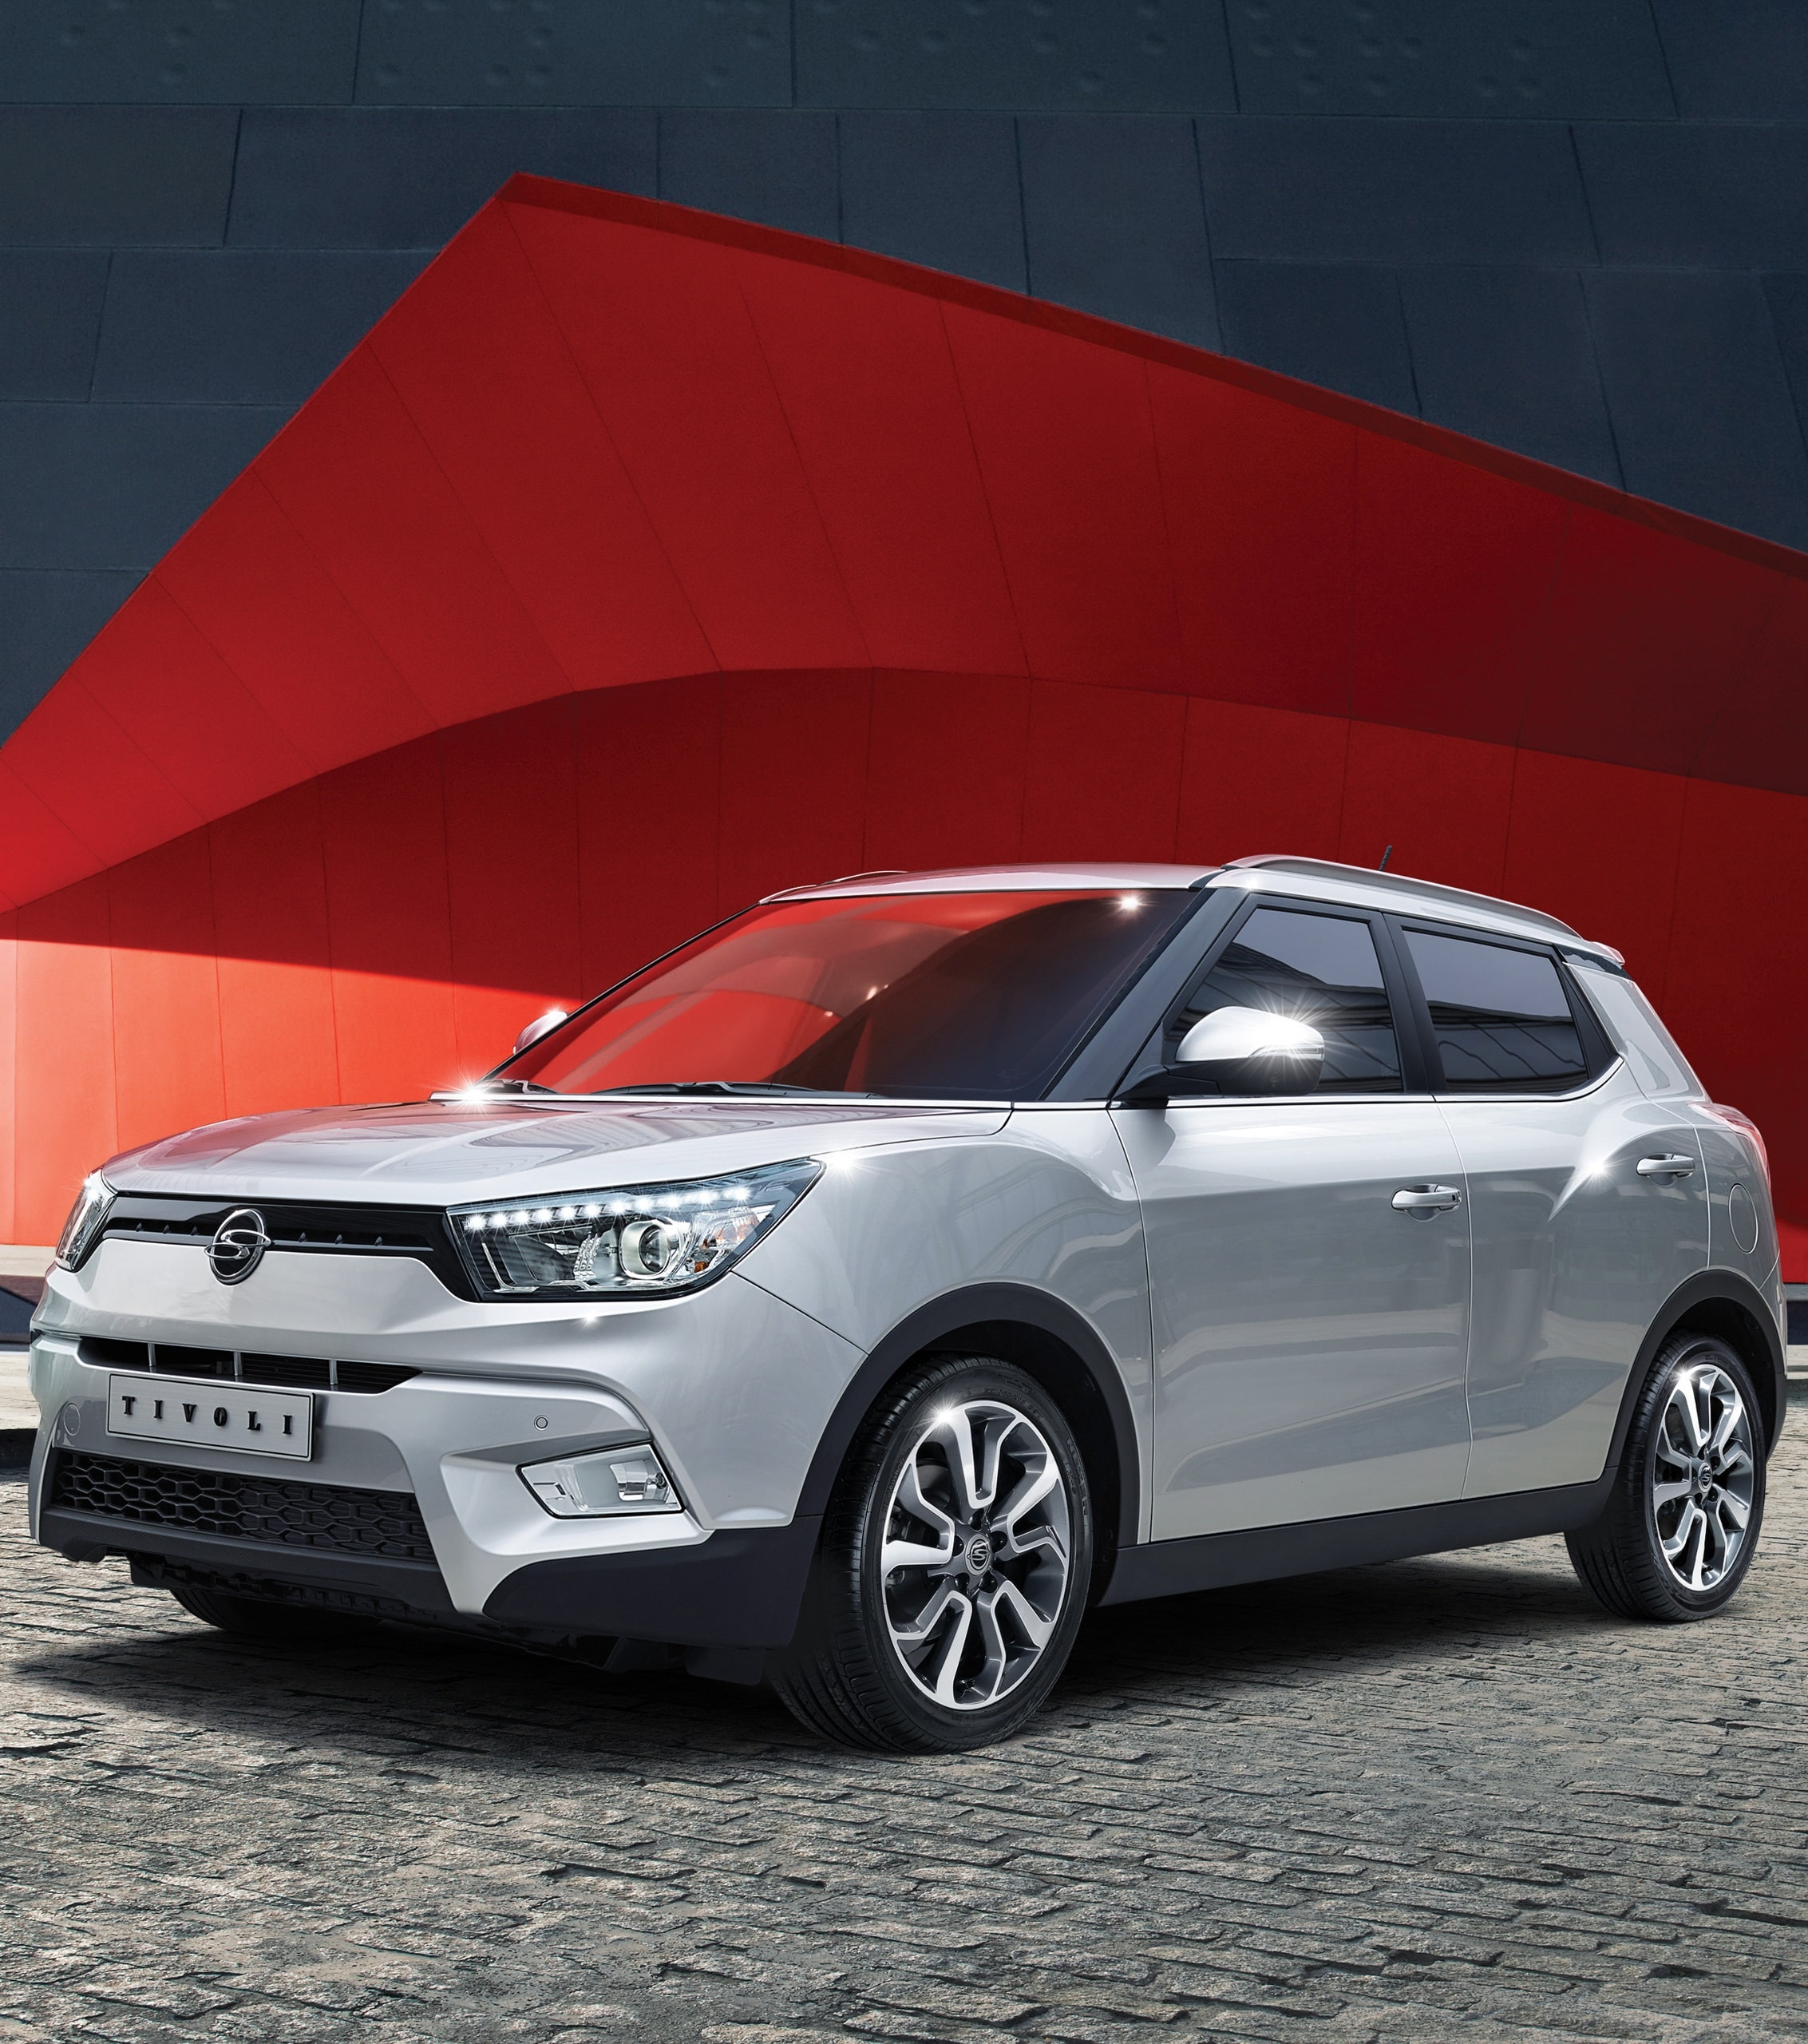 SsangYong Tivoli For mobile